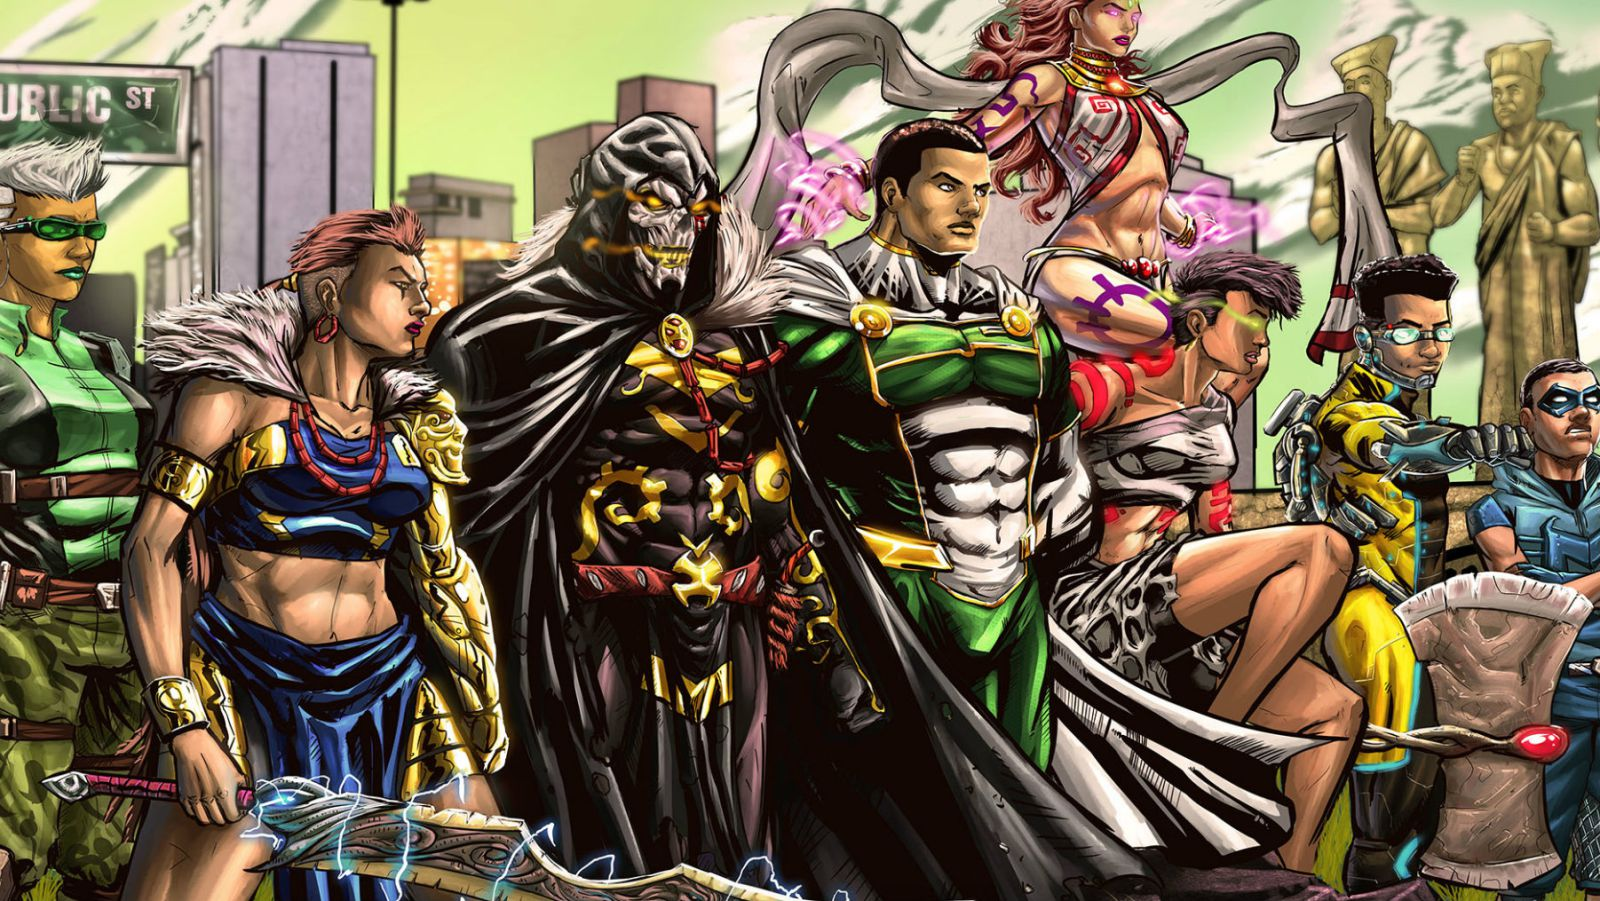 Comic Republic Universe characters, featuring some of the most well known nigerian comics